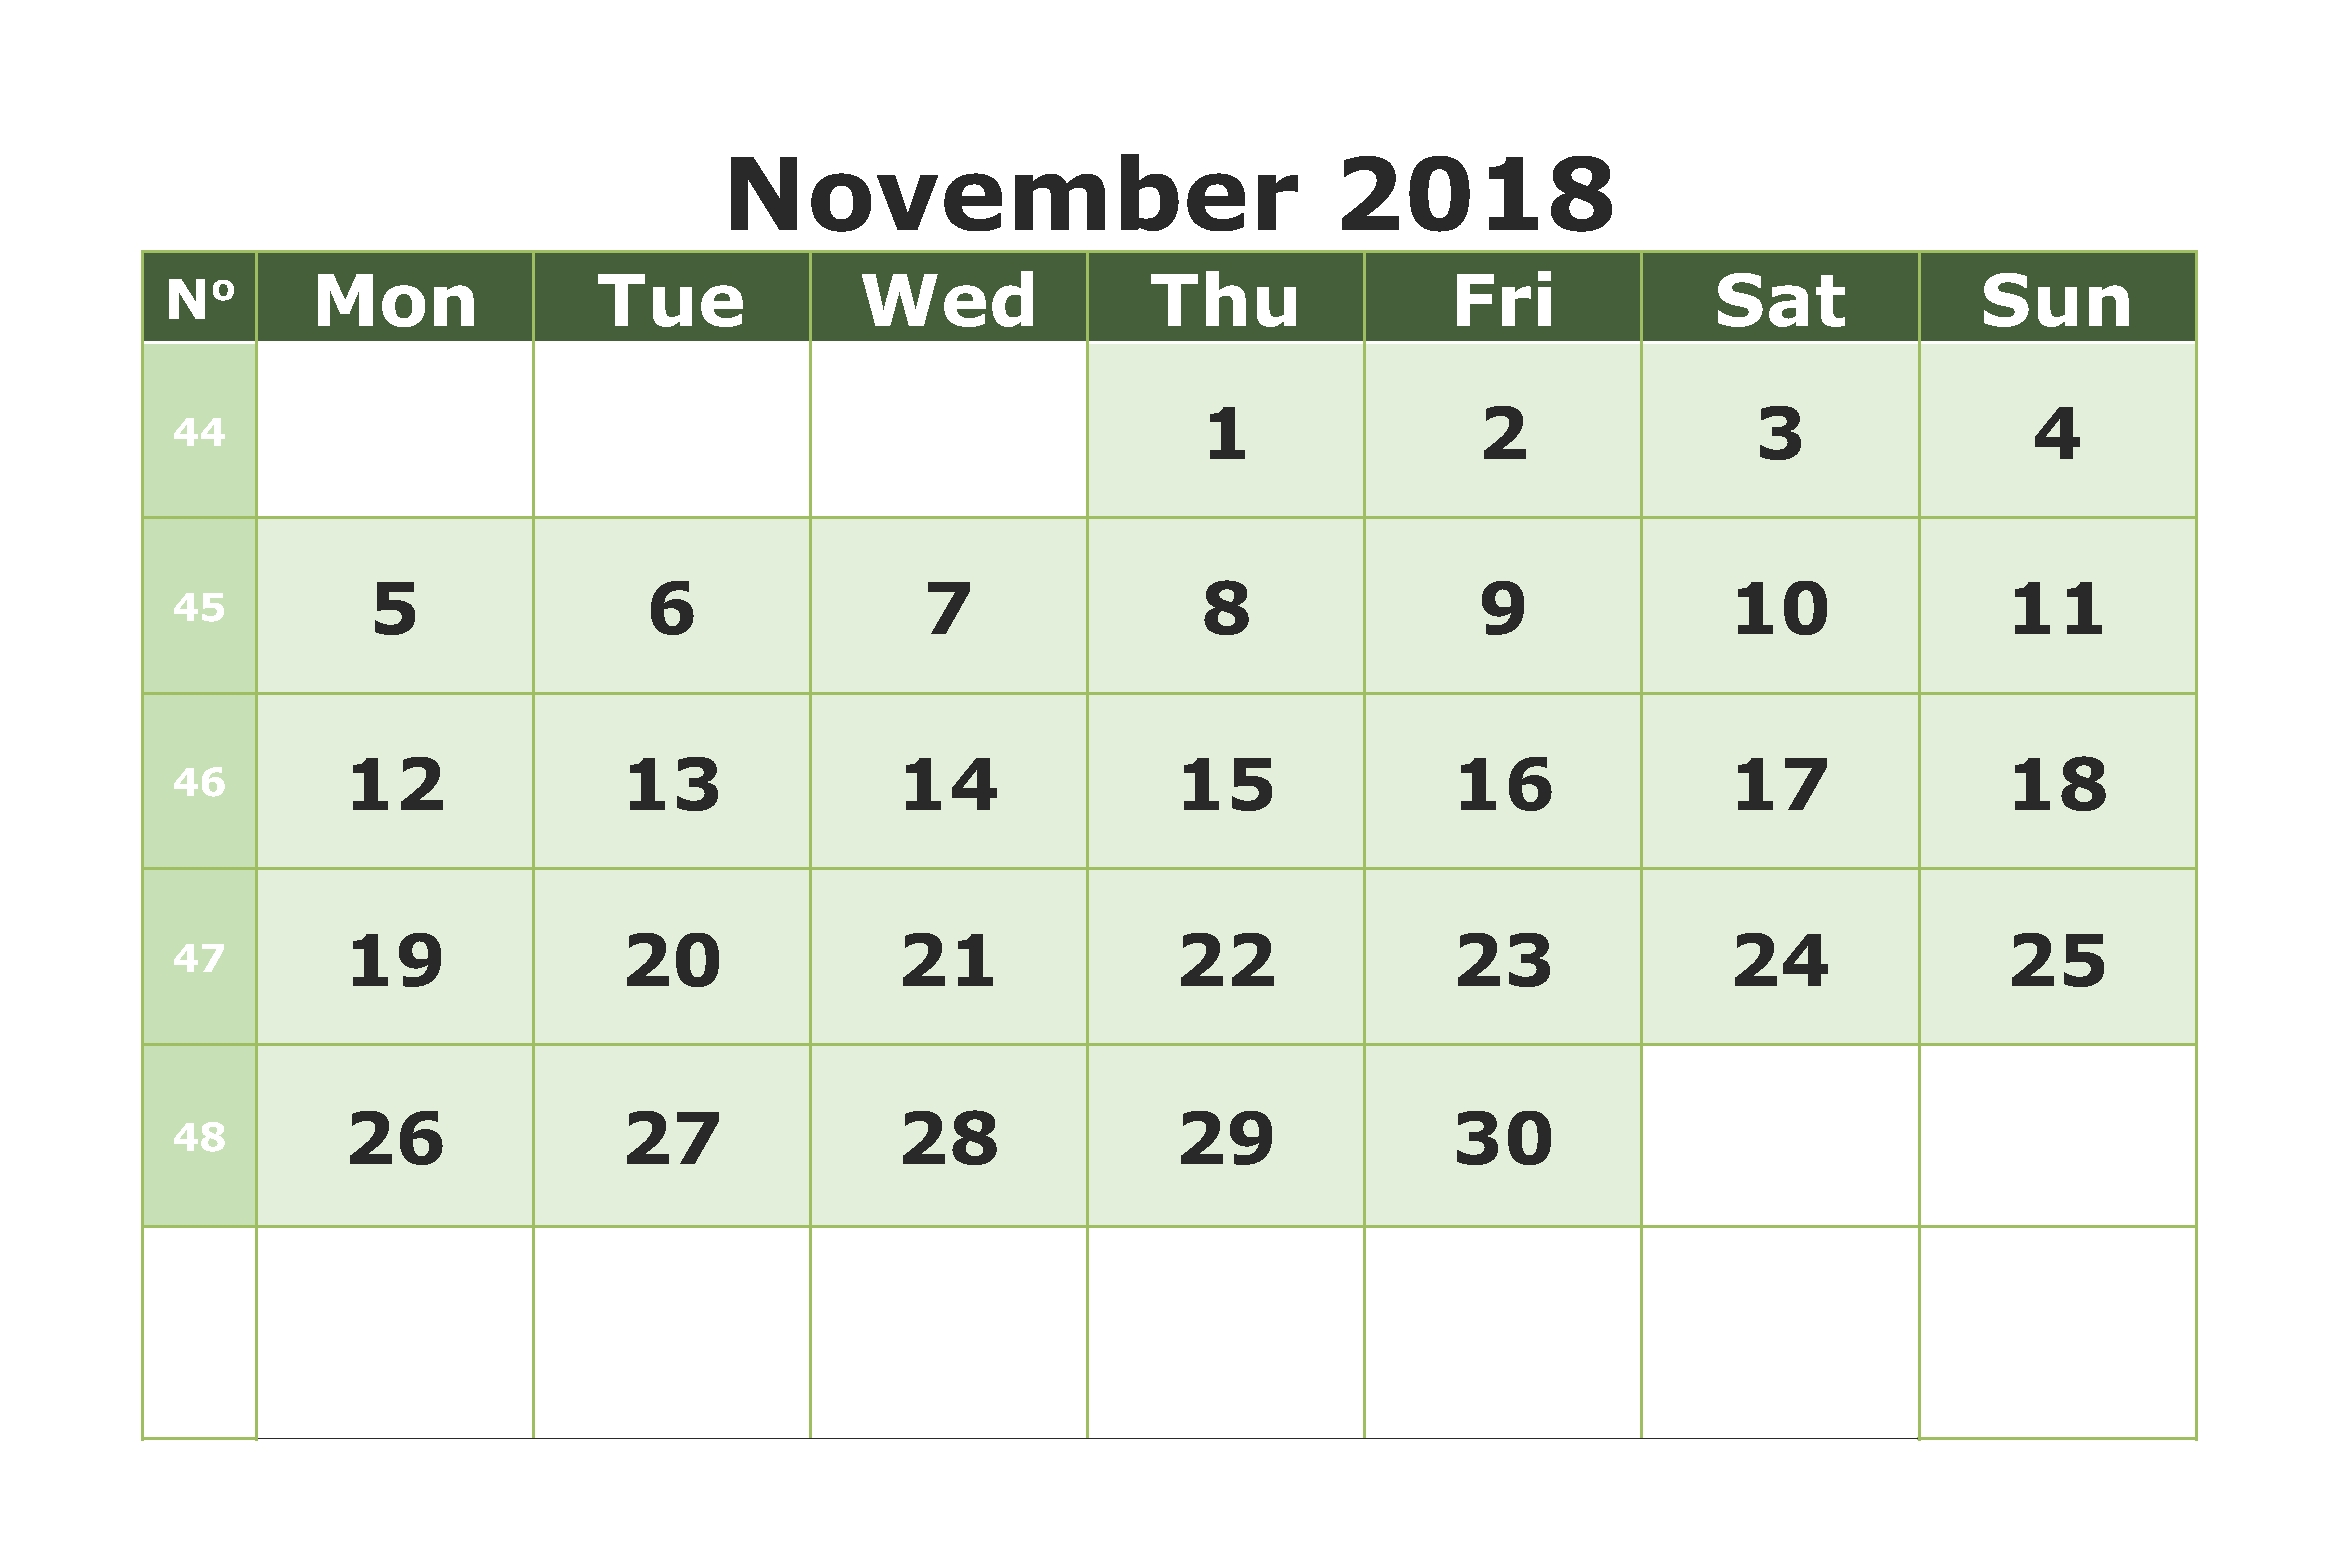 free november 2018 a4 calendar printable templates october 2018::November 2018 Calendar Printable Template